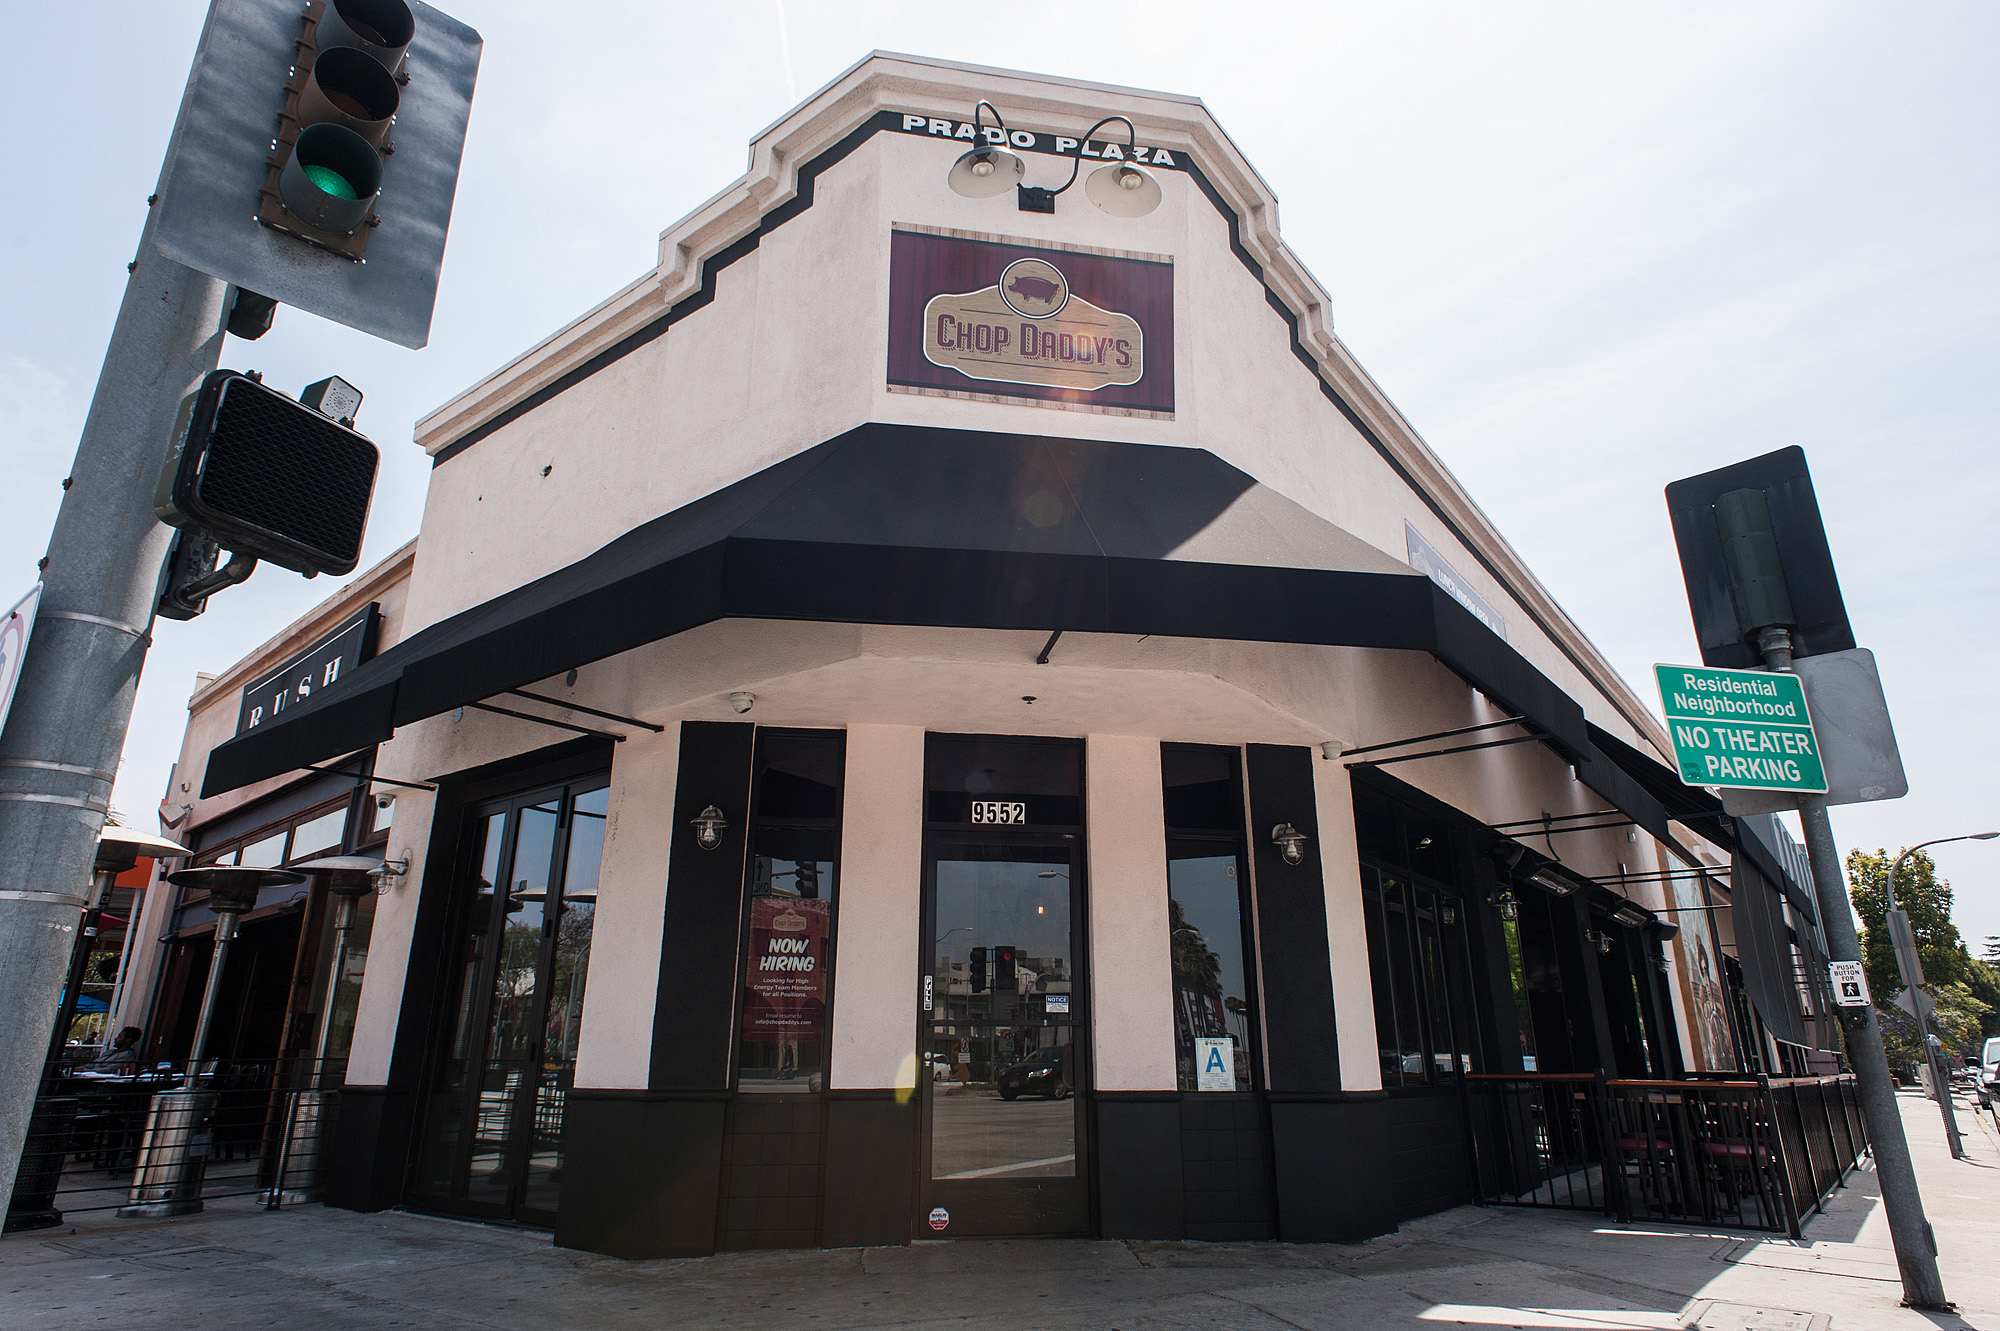 The former Chop Daddy's, Culver City